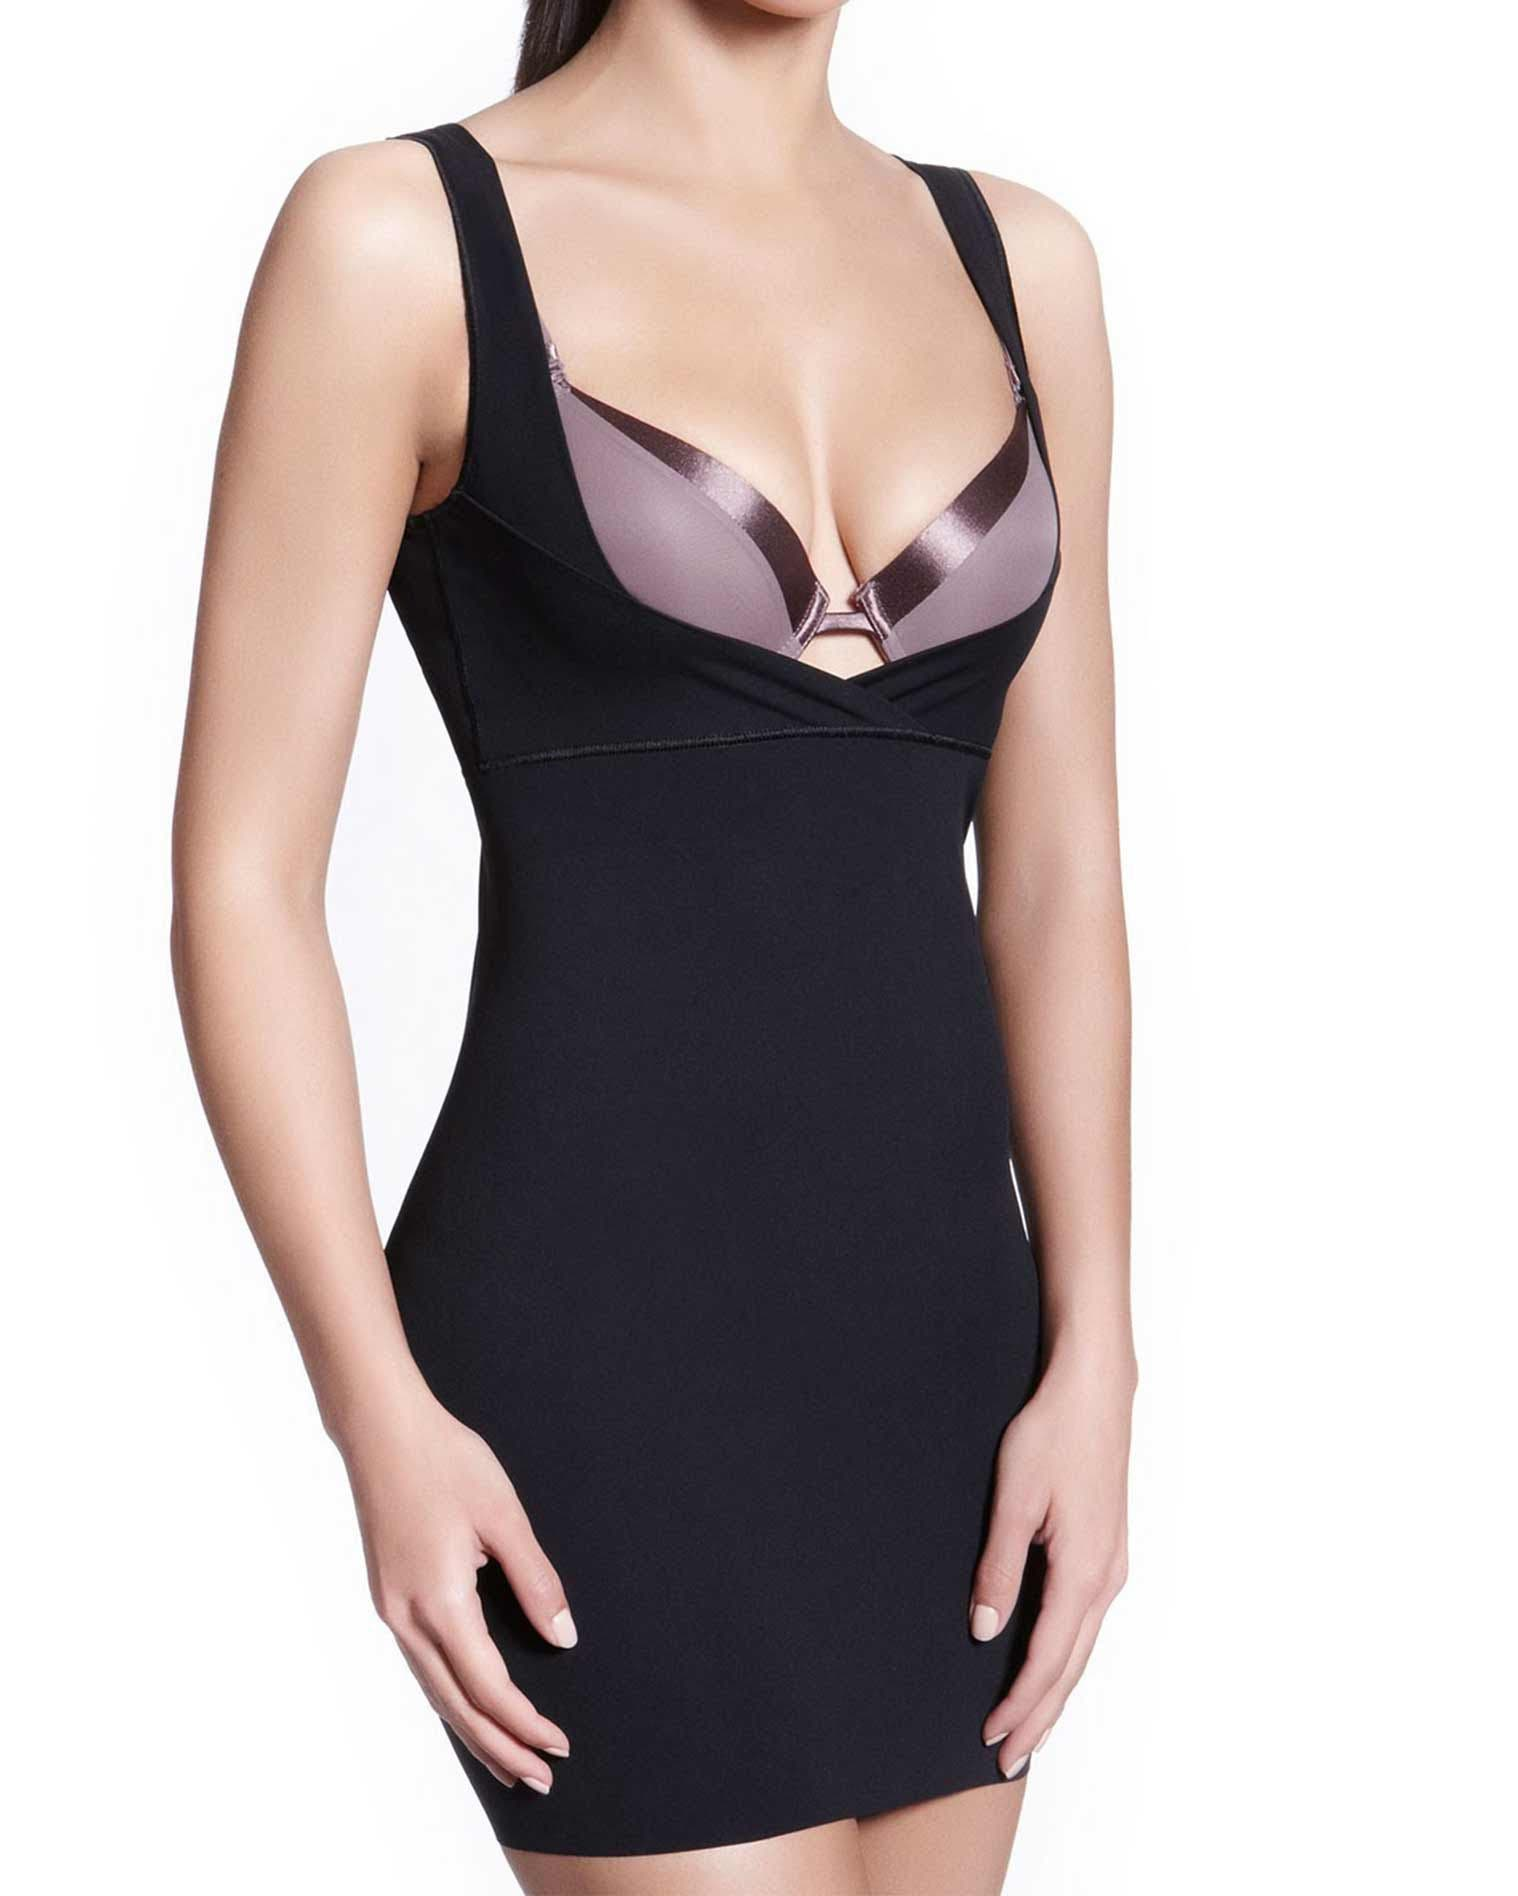 Dress shaper - Black